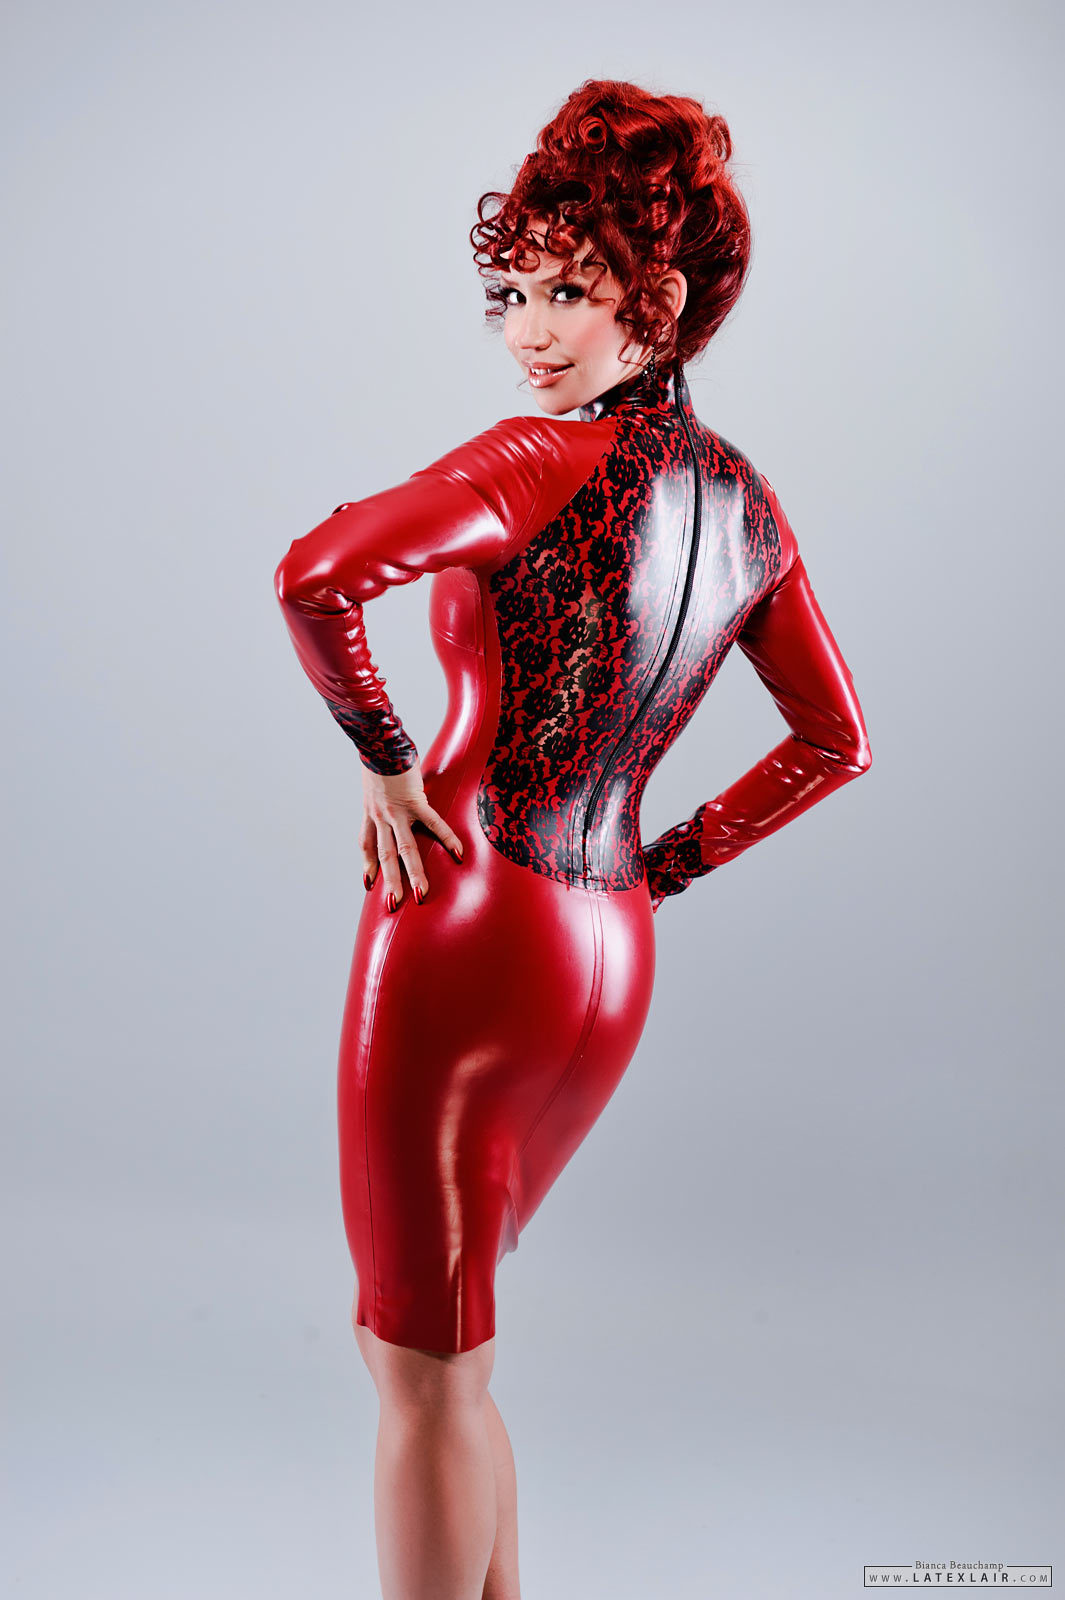 Latexlair